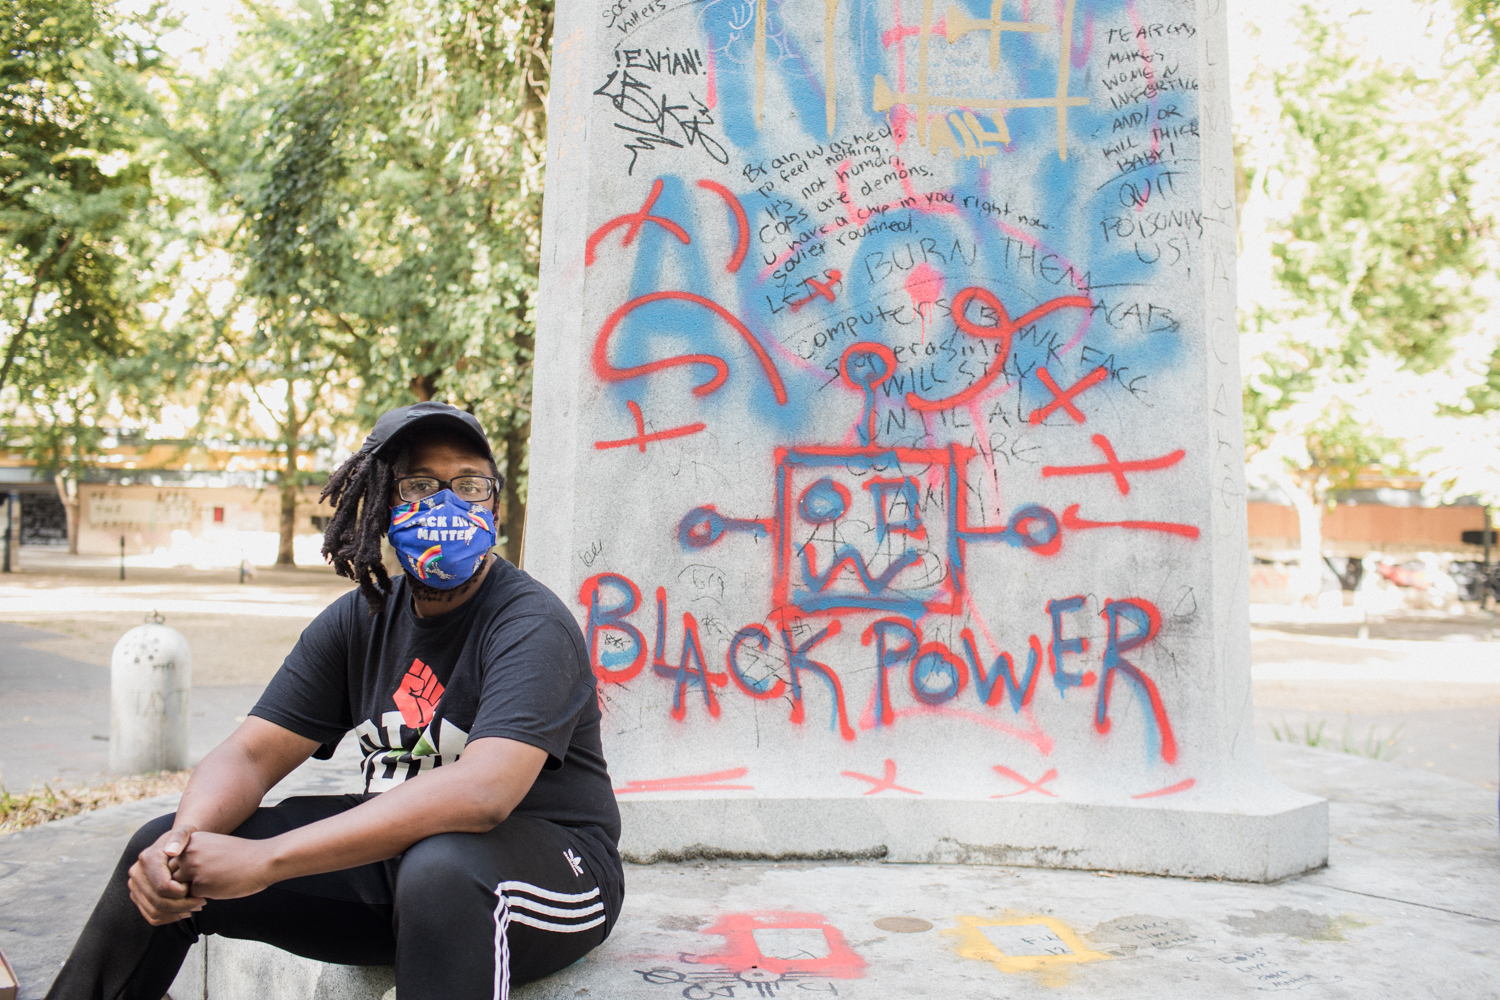 """A man sits by a monument with """"Black Power"""" spraypainted on it"""